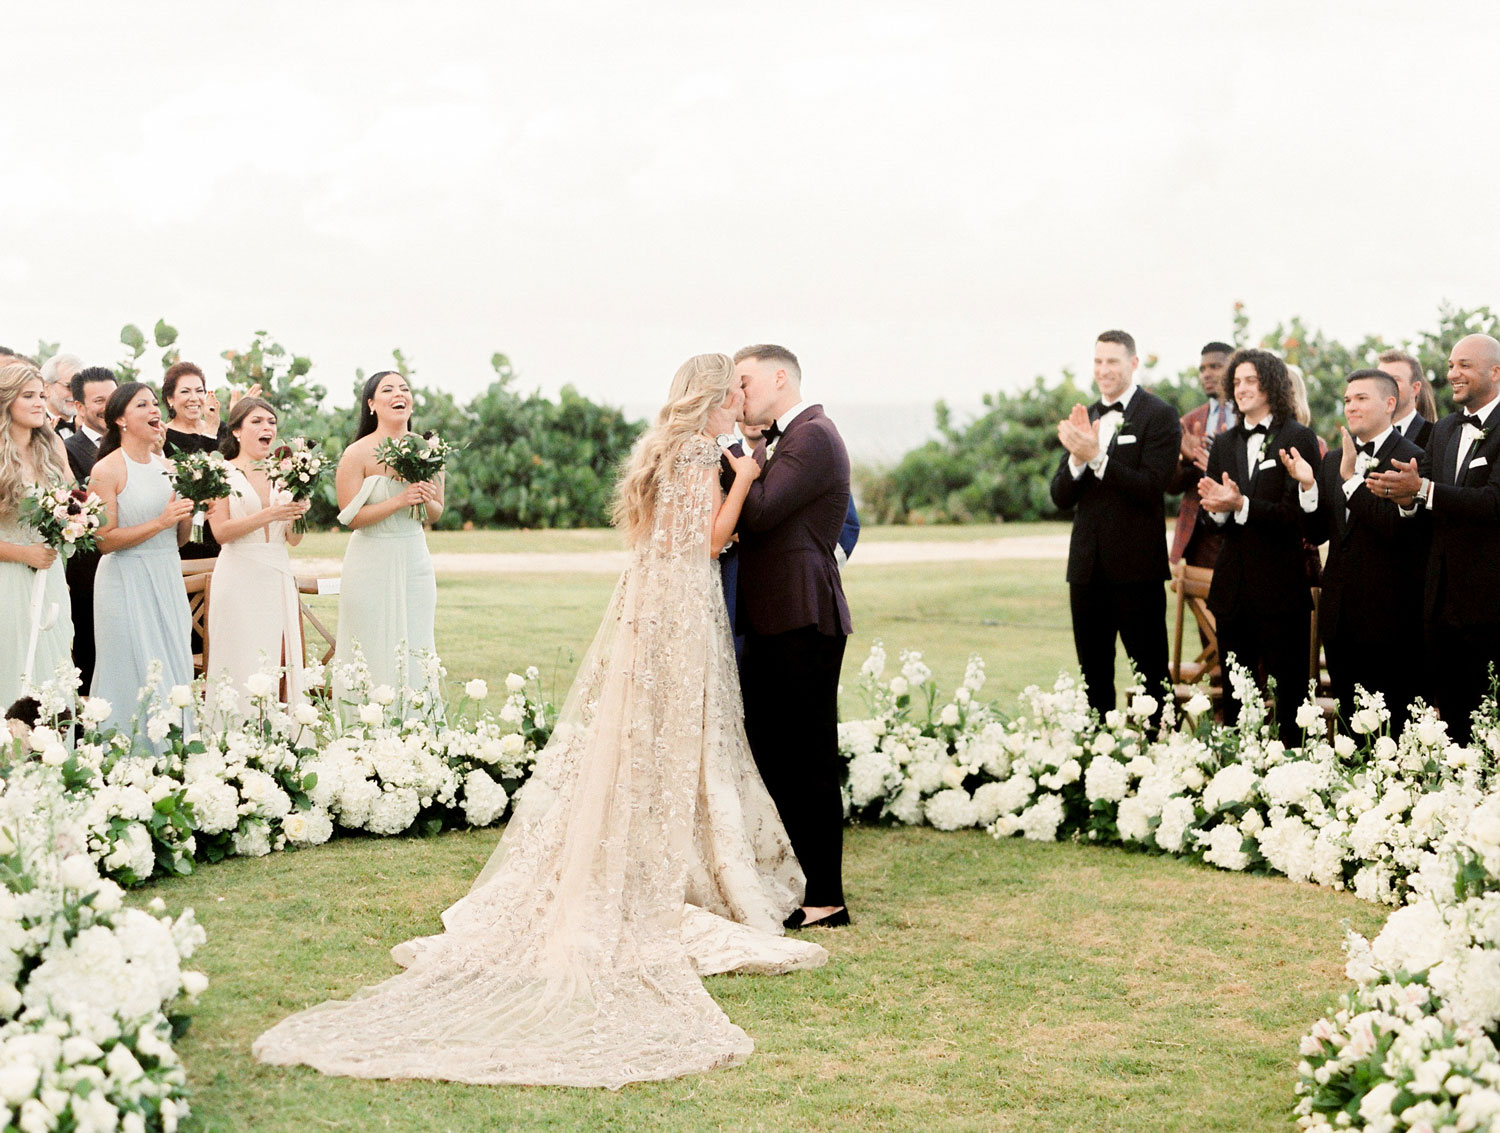 kiké hernandez and mariana vicente first kiss at wedding, how to have the perfect photo of your first kiss at your wedding